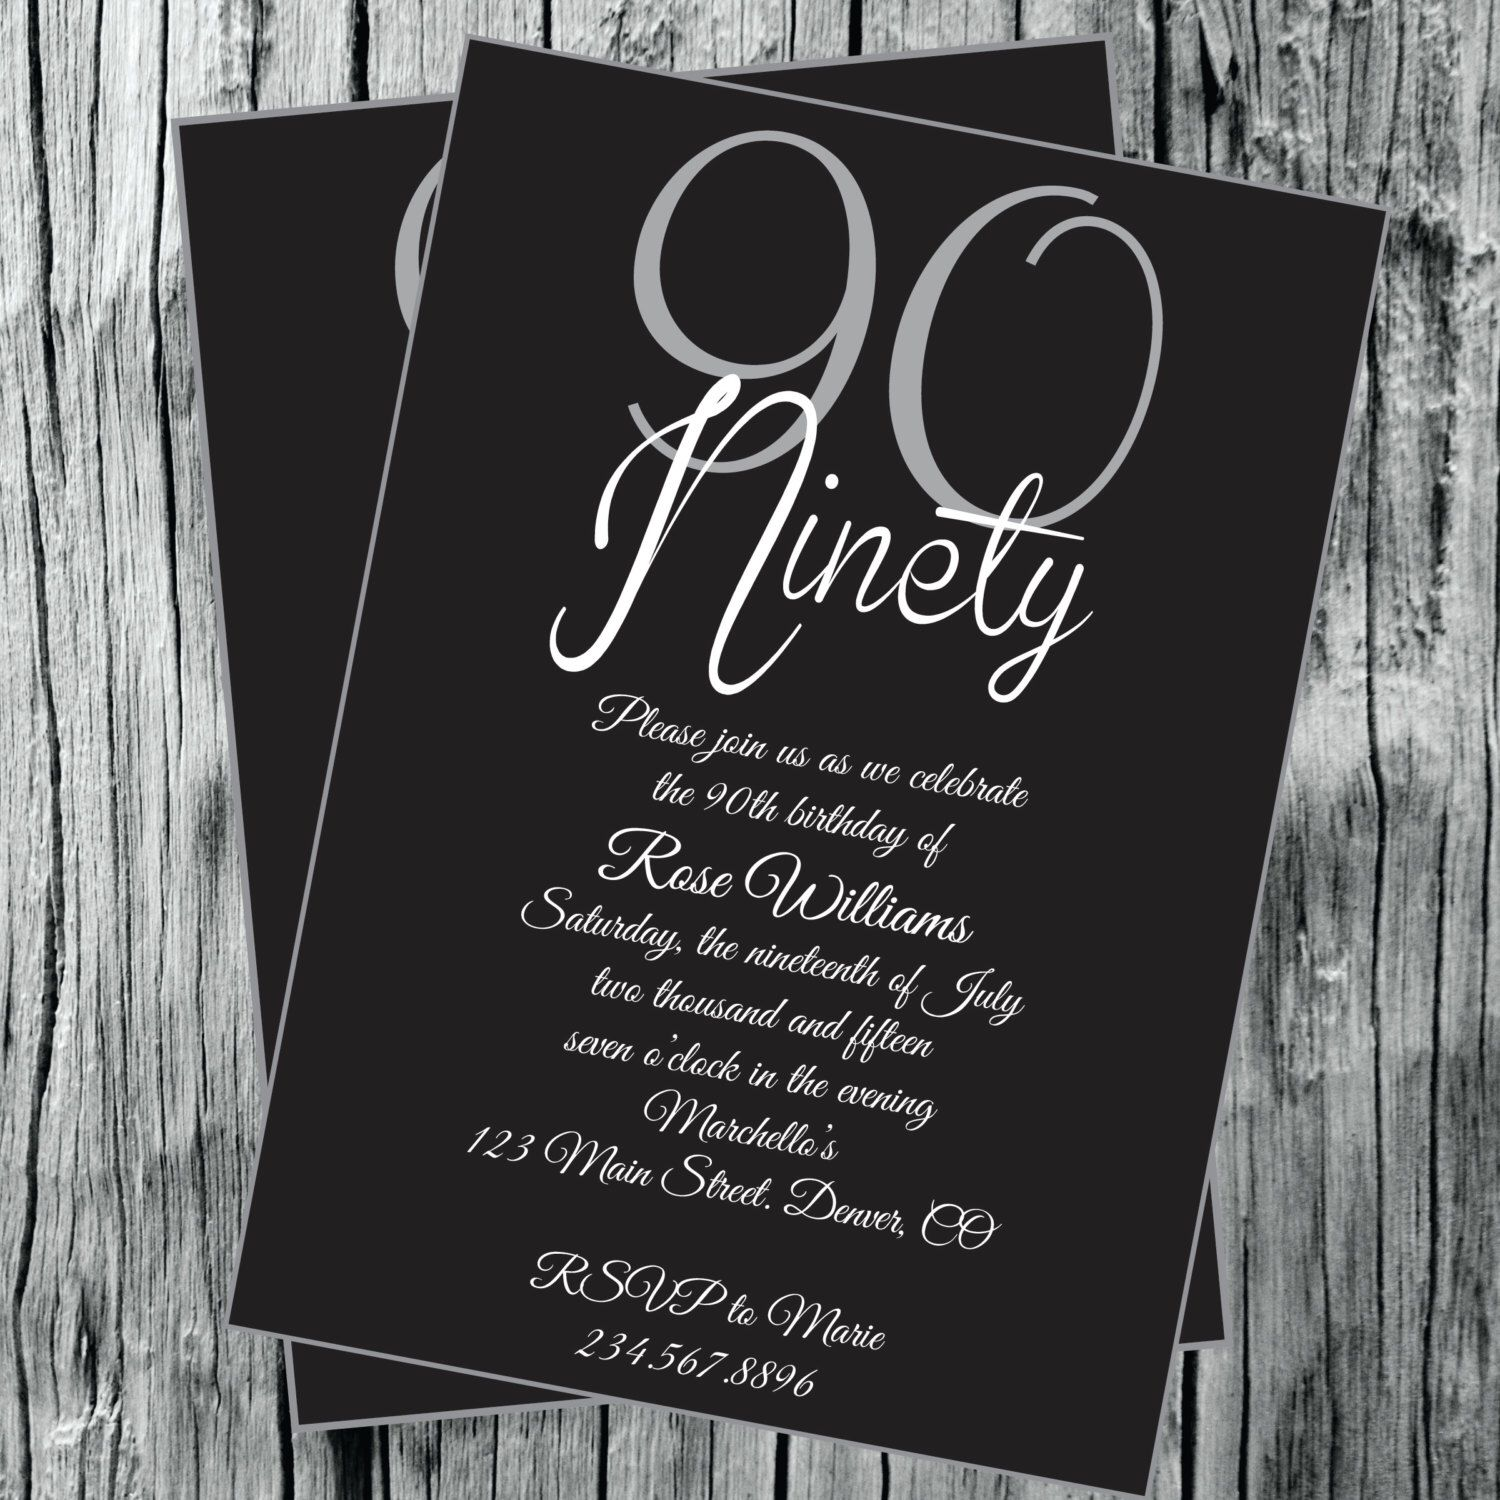 90th 80th 70th 60th birthday party invitation by 90th 80th 70th 60th birthday party invitation by elegantlysimpleinc on etsy https stopboris Gallery